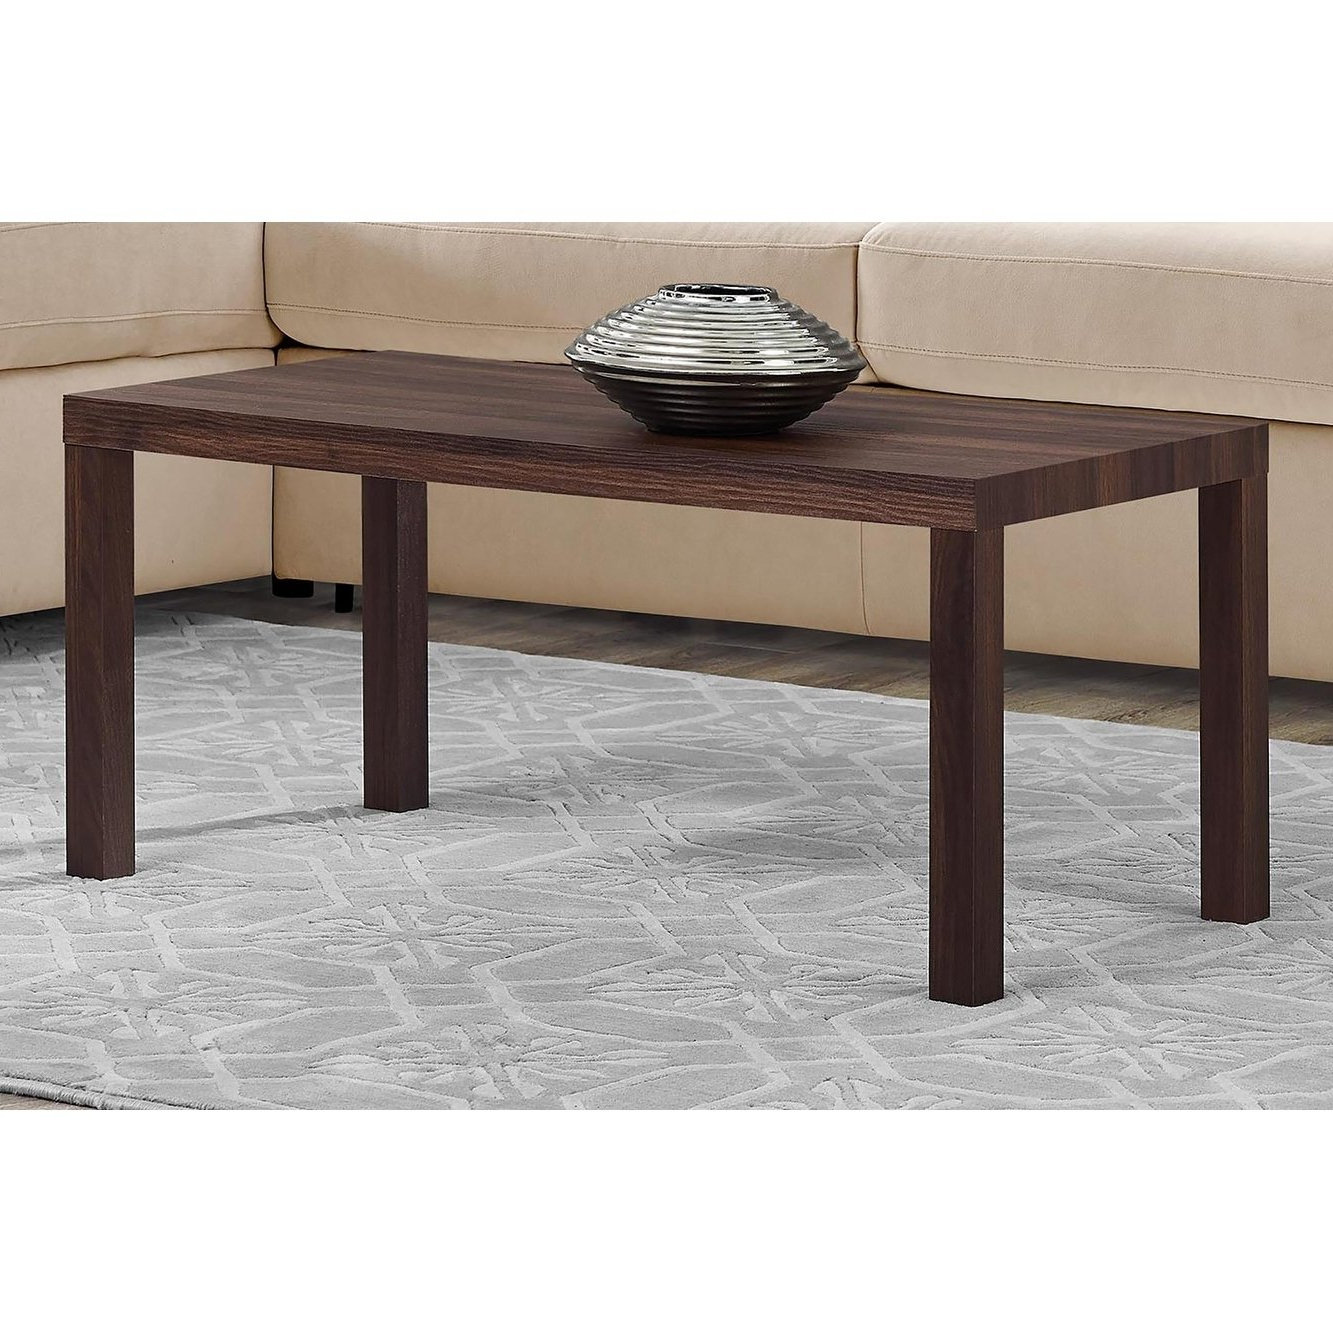 Jaxon Cocktail Tables Regarding Most Up To Date Shop Avenue Greene Jaxon Walnut Coffee Table – Free Shipping Today (Gallery 4 of 20)